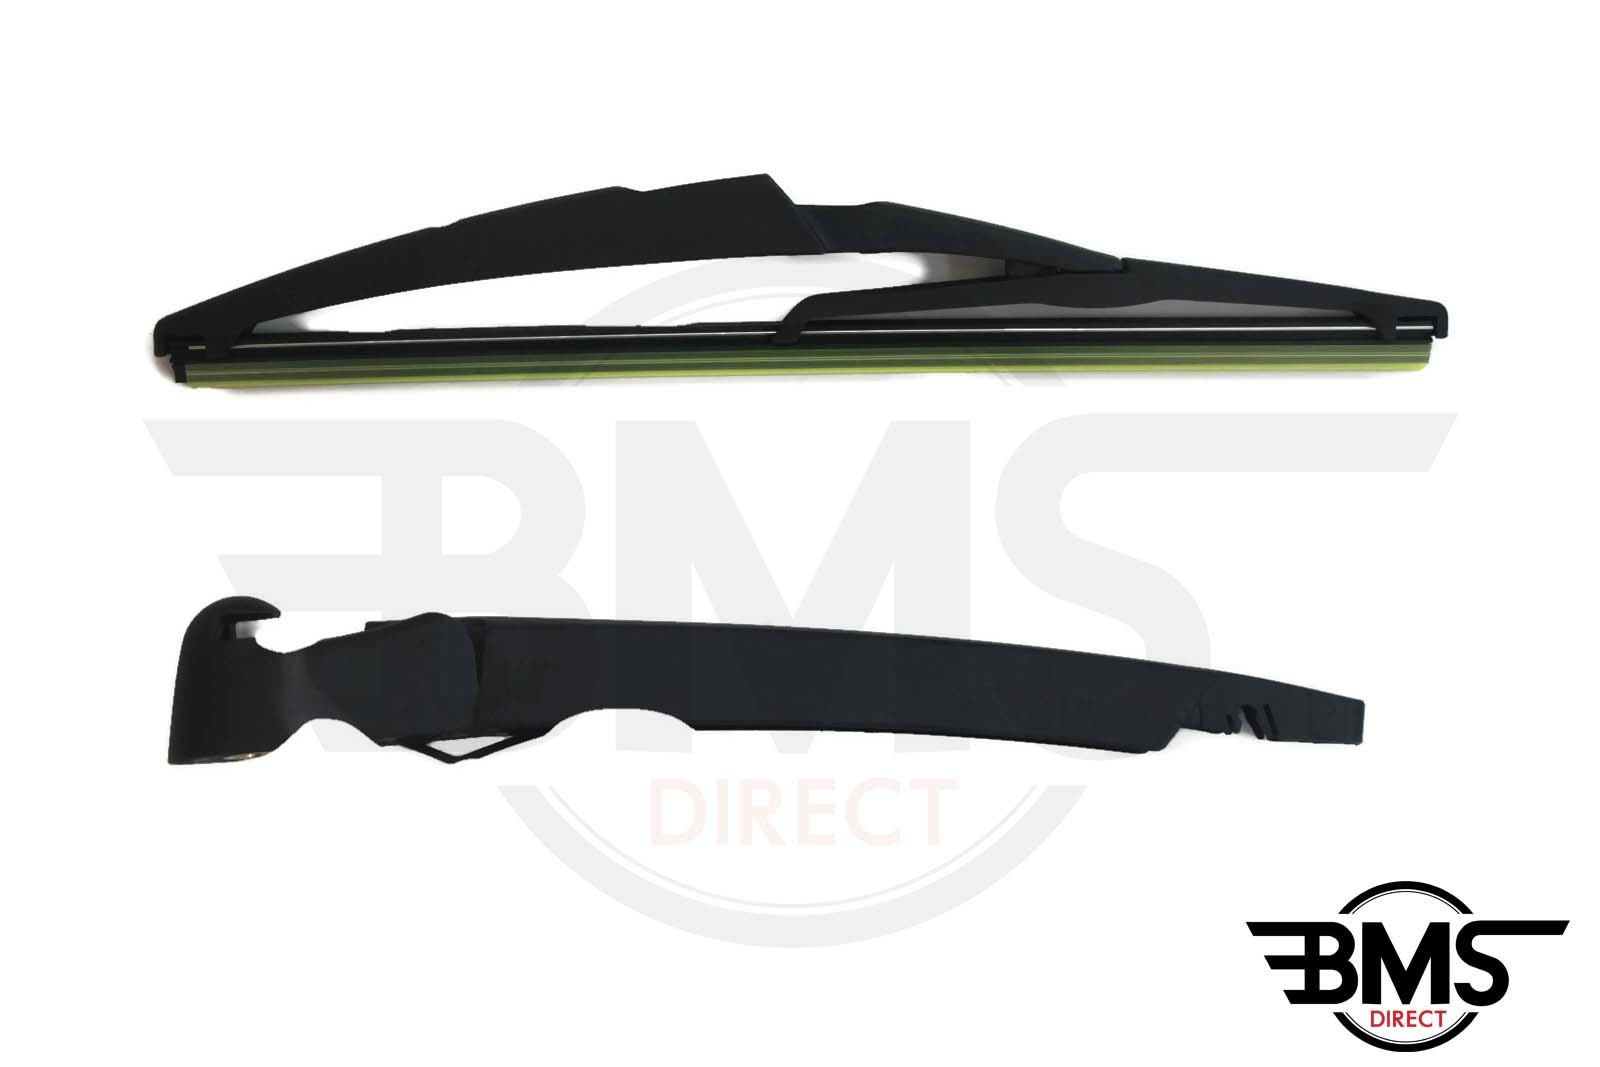 One Cooper S Facelift Rear Wiper Arm Blade R50 R53